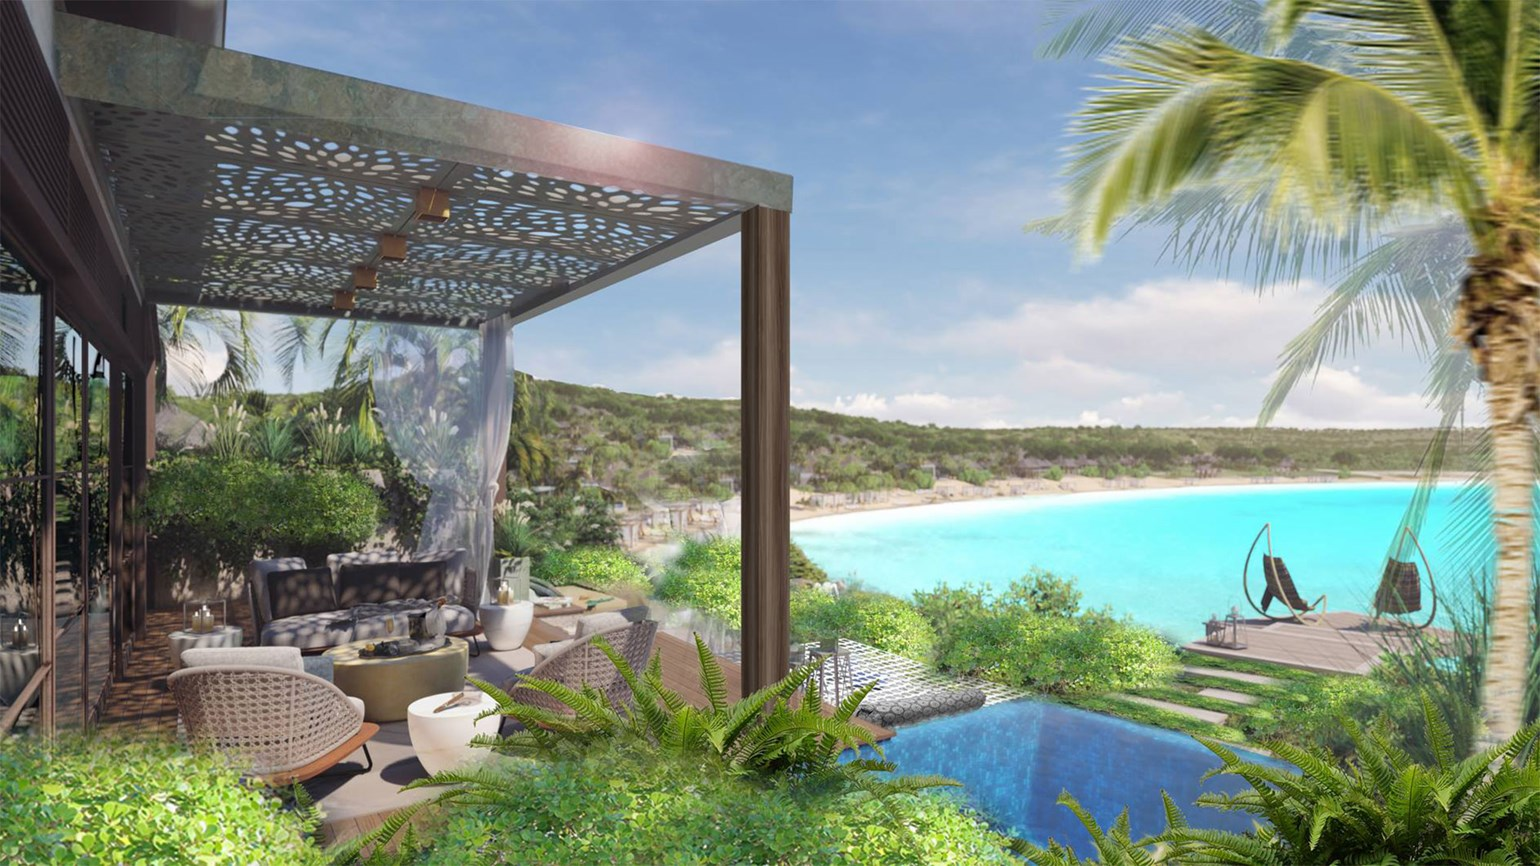 Rosewood to manage new resort on Antigua's Half Moon Bay site